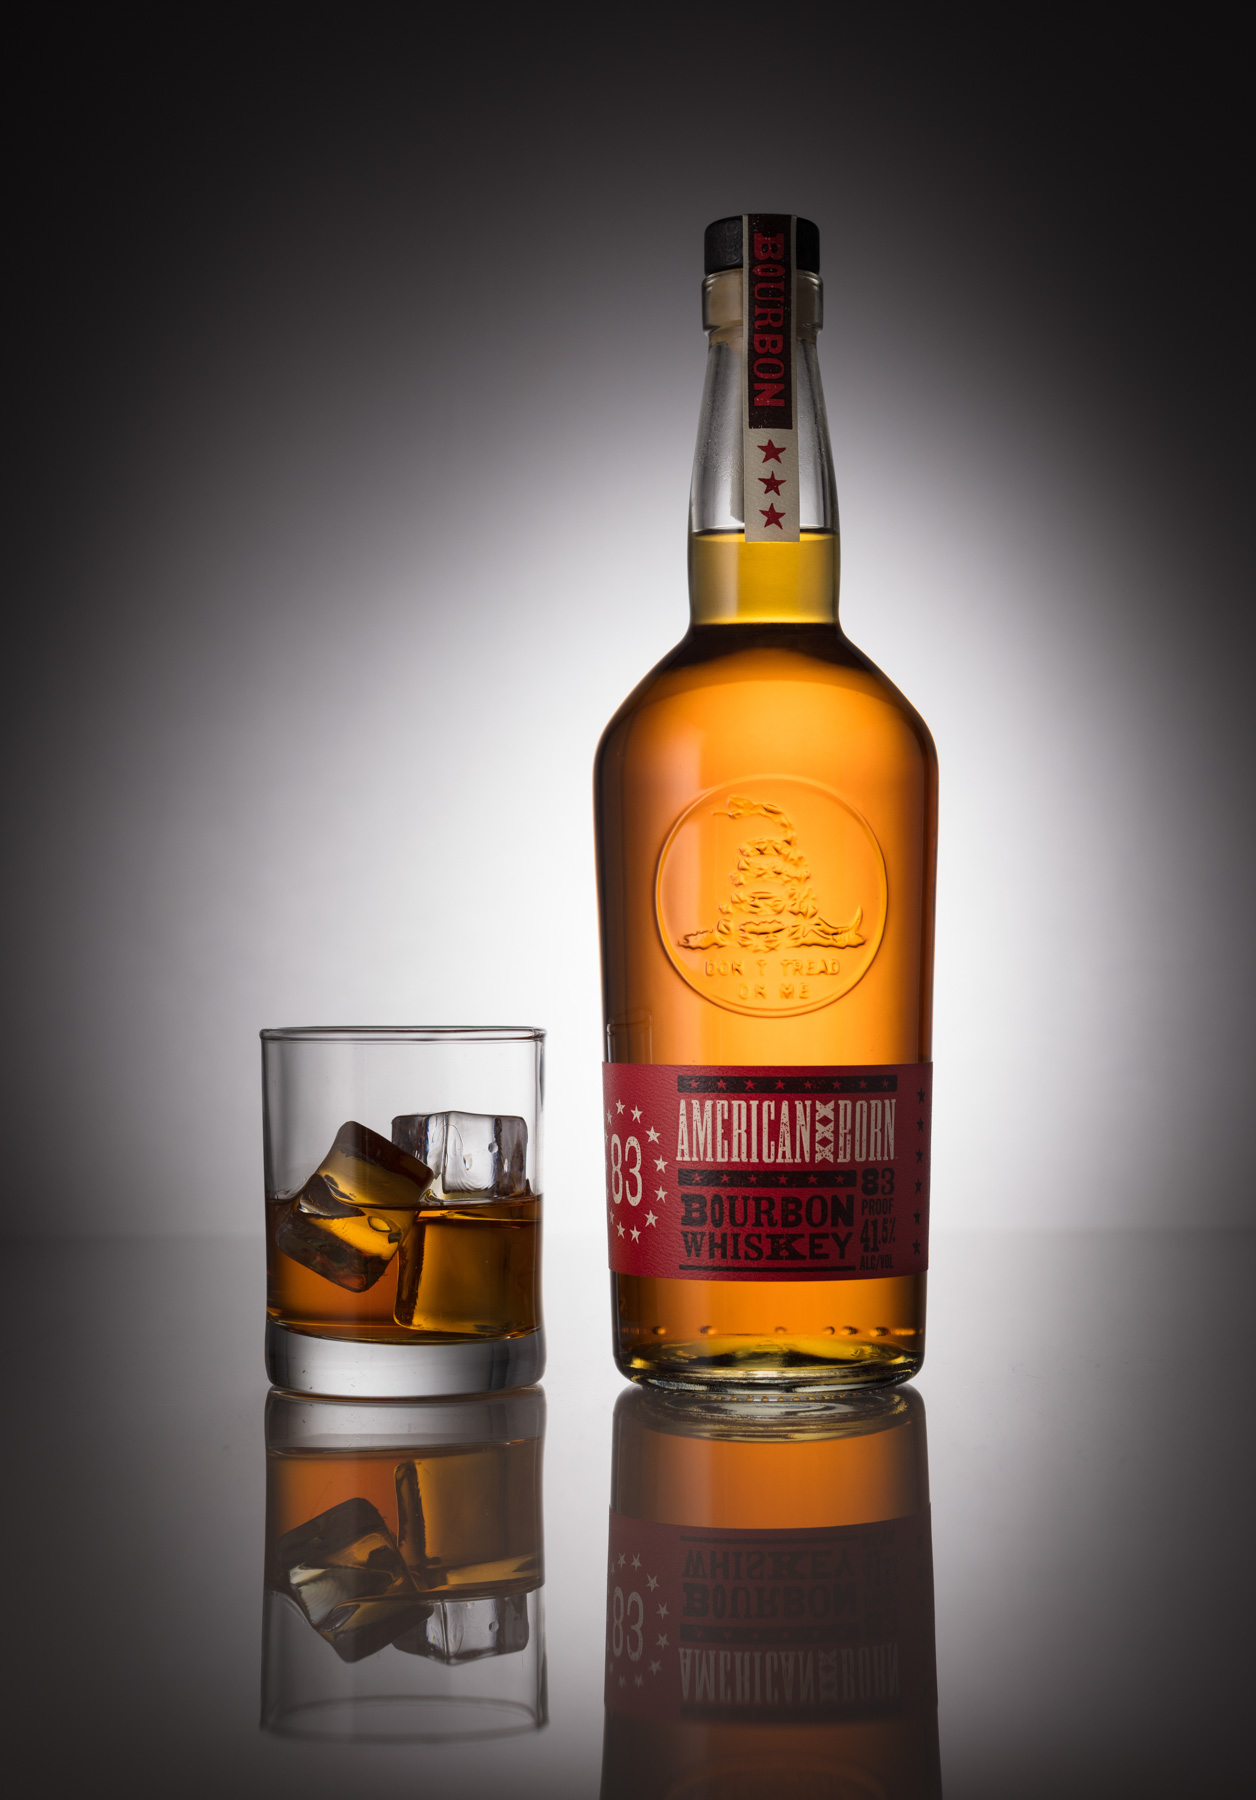 American Born Whiskey bottle beverage product photography with glass and ice on gradient background.